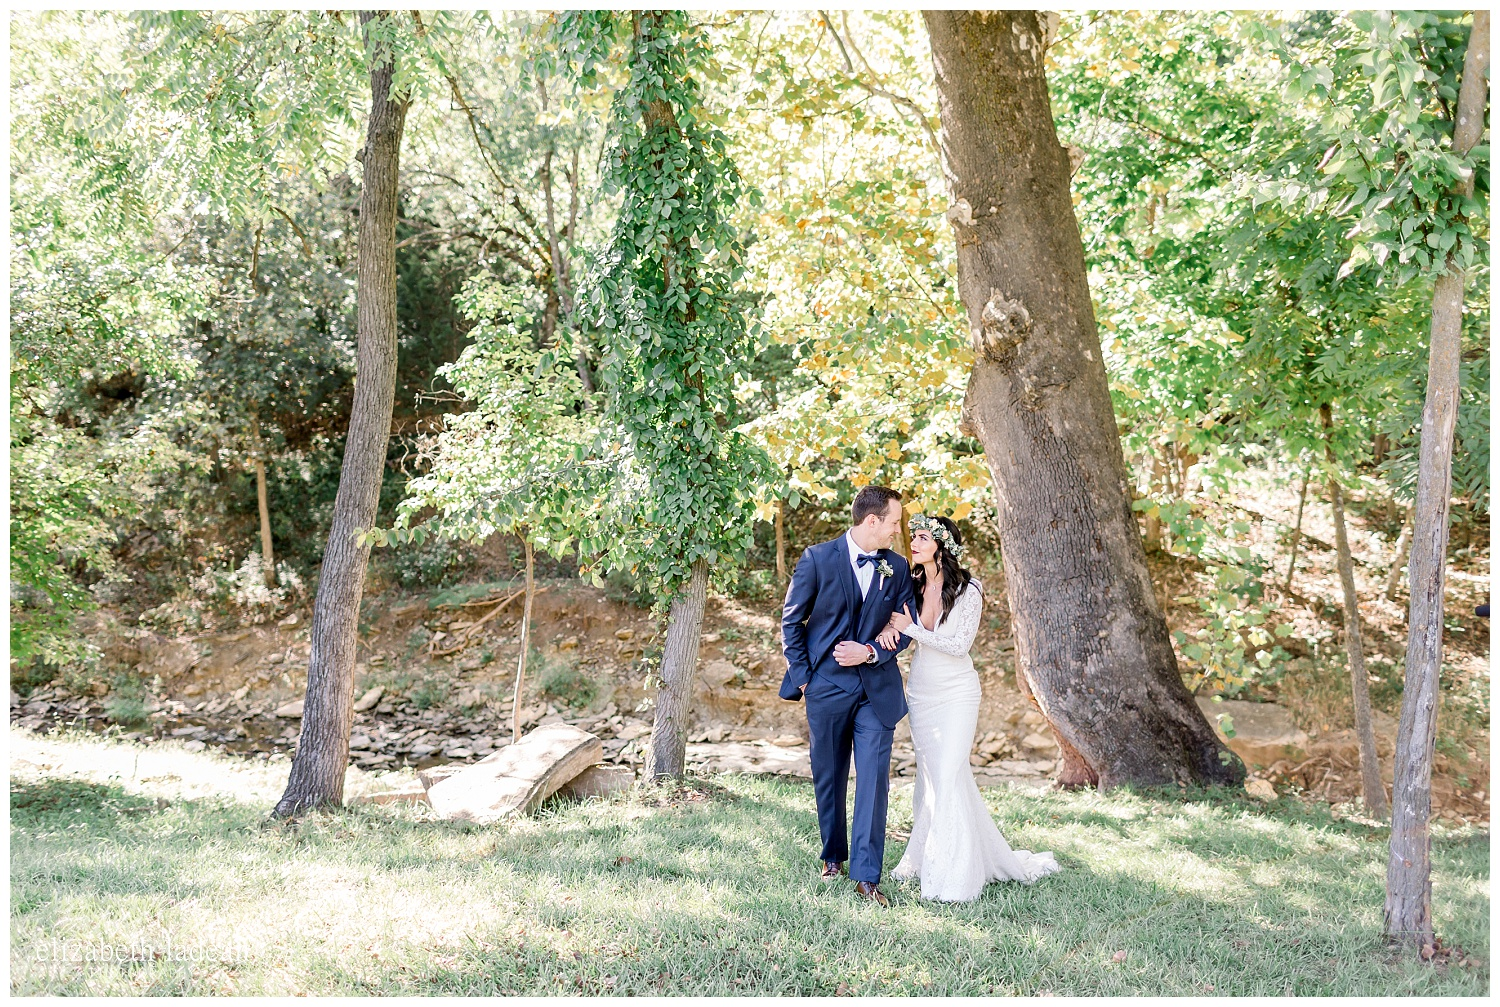 Willow-Creek-Blush-and-Blues-Outdoor-Wedding-Photography-S+Z2018-elizabeth-ladean-photography-photo_0503.jpg